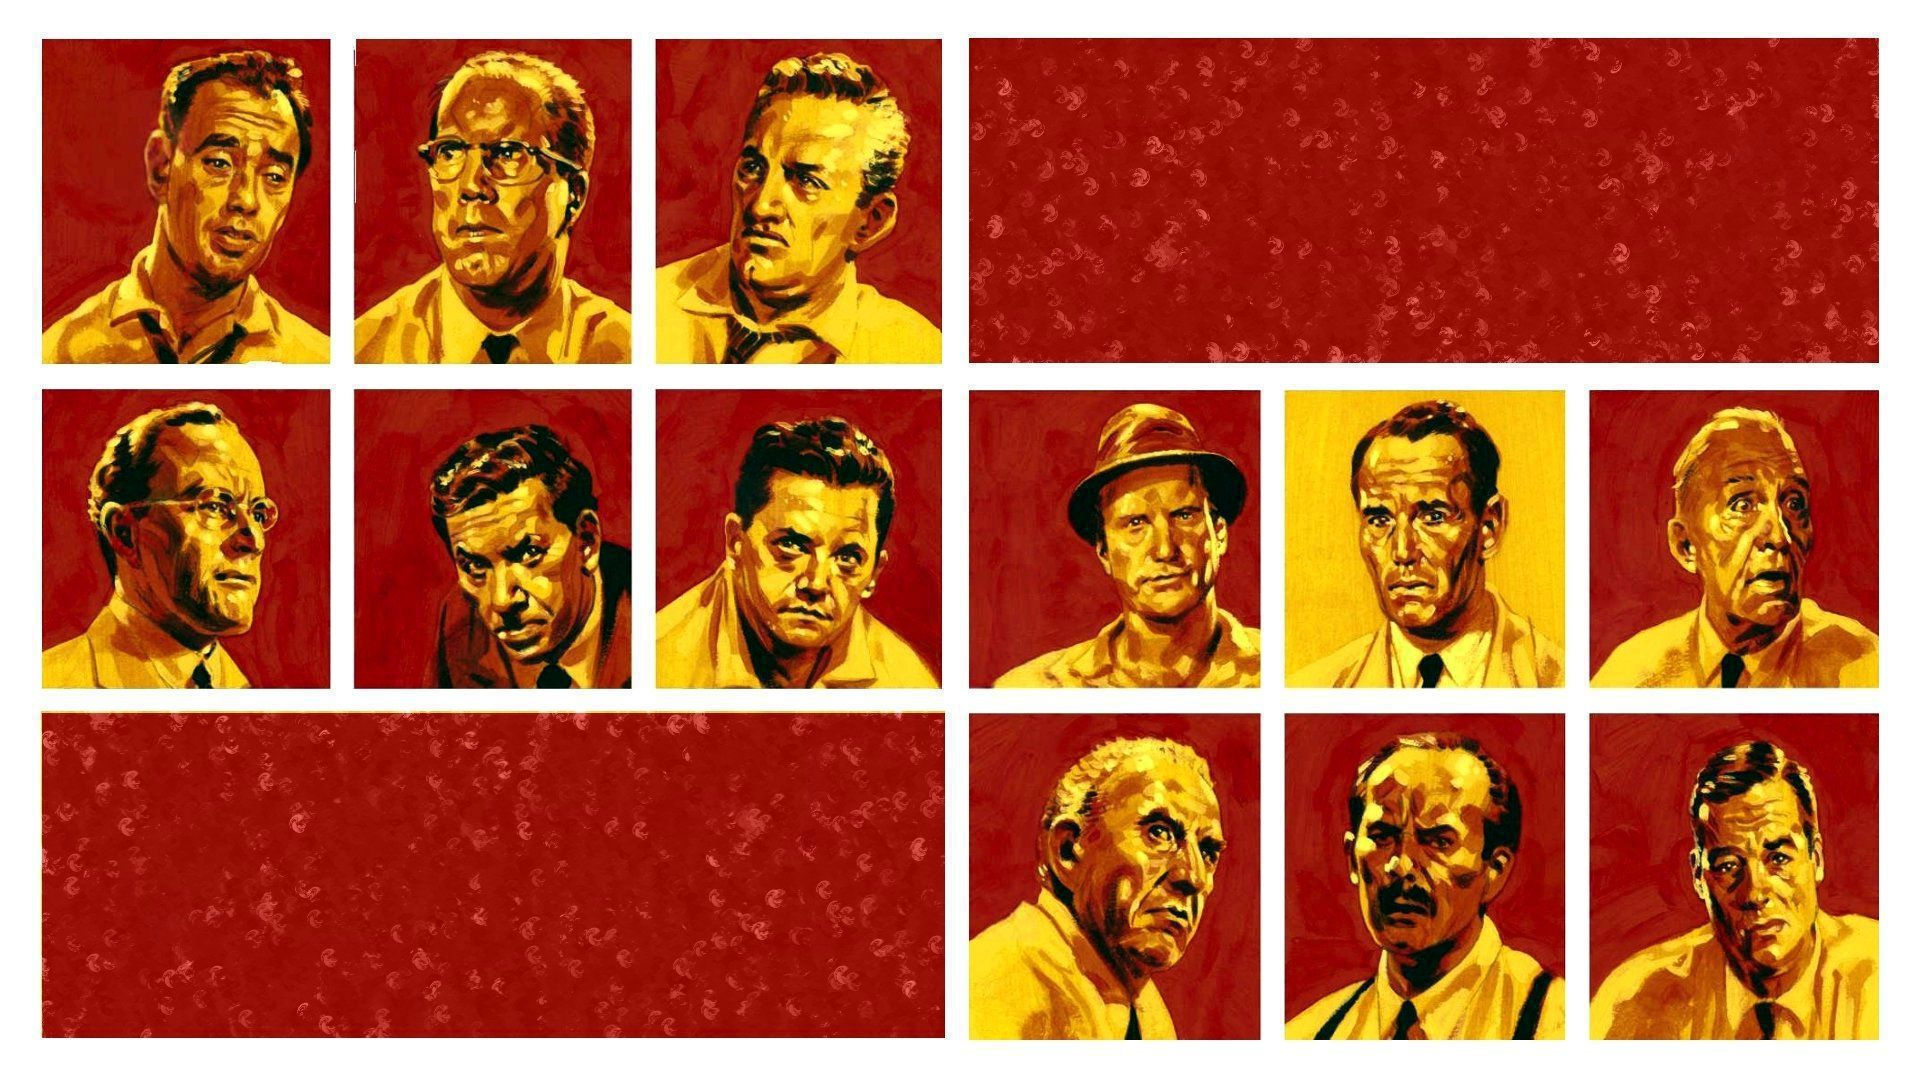 12 Angry Men Wallpapers HD 1920x1080